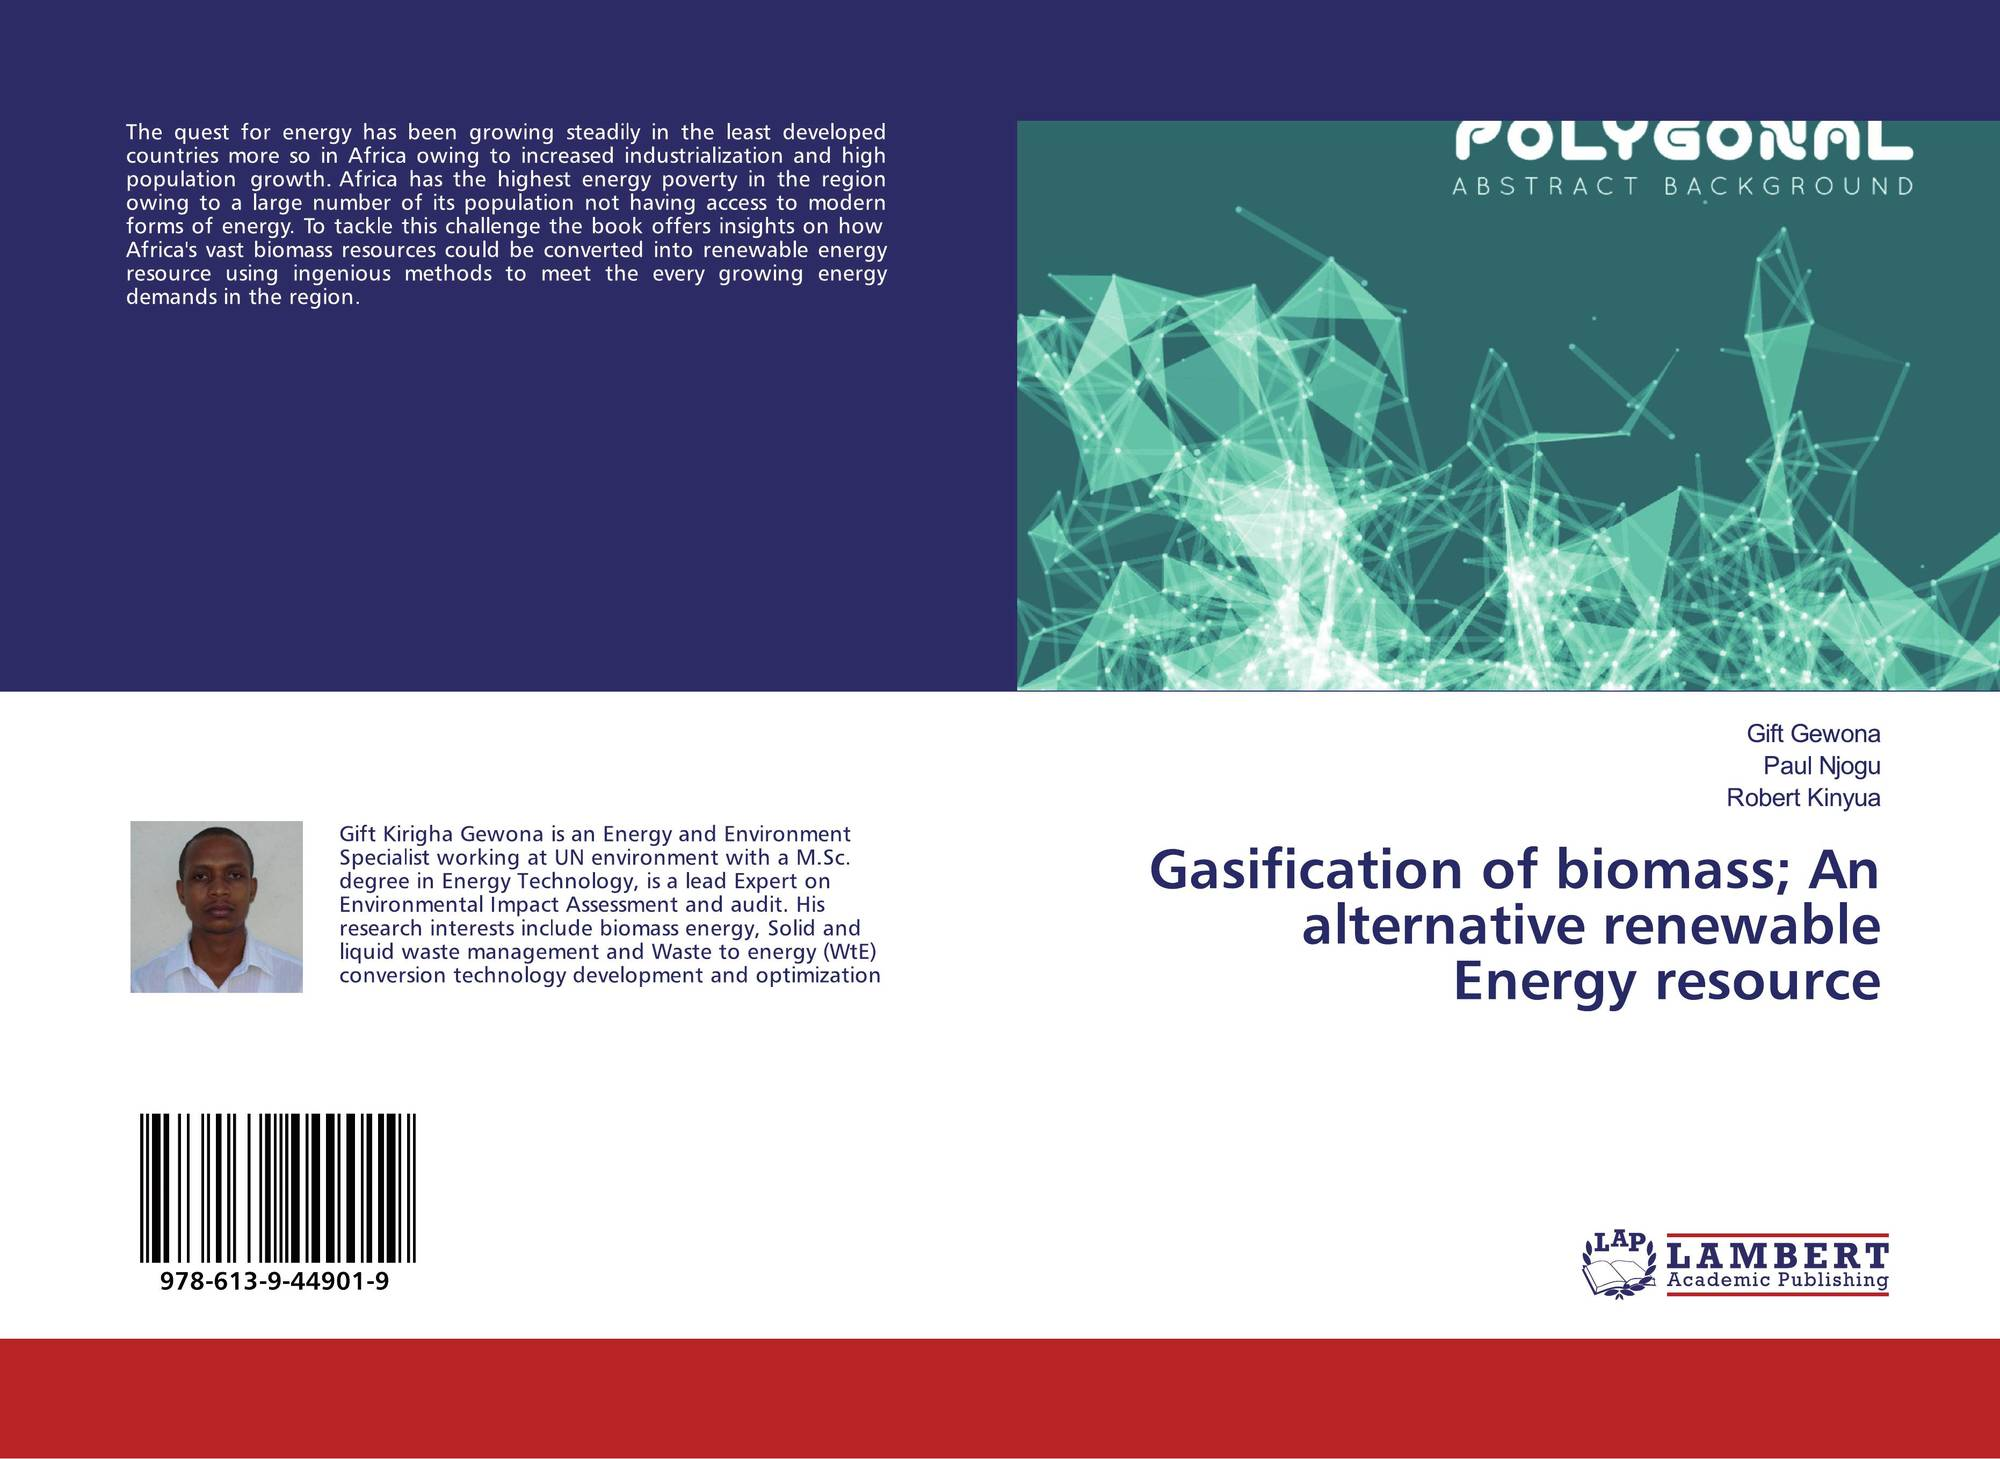 Gasification of biomass